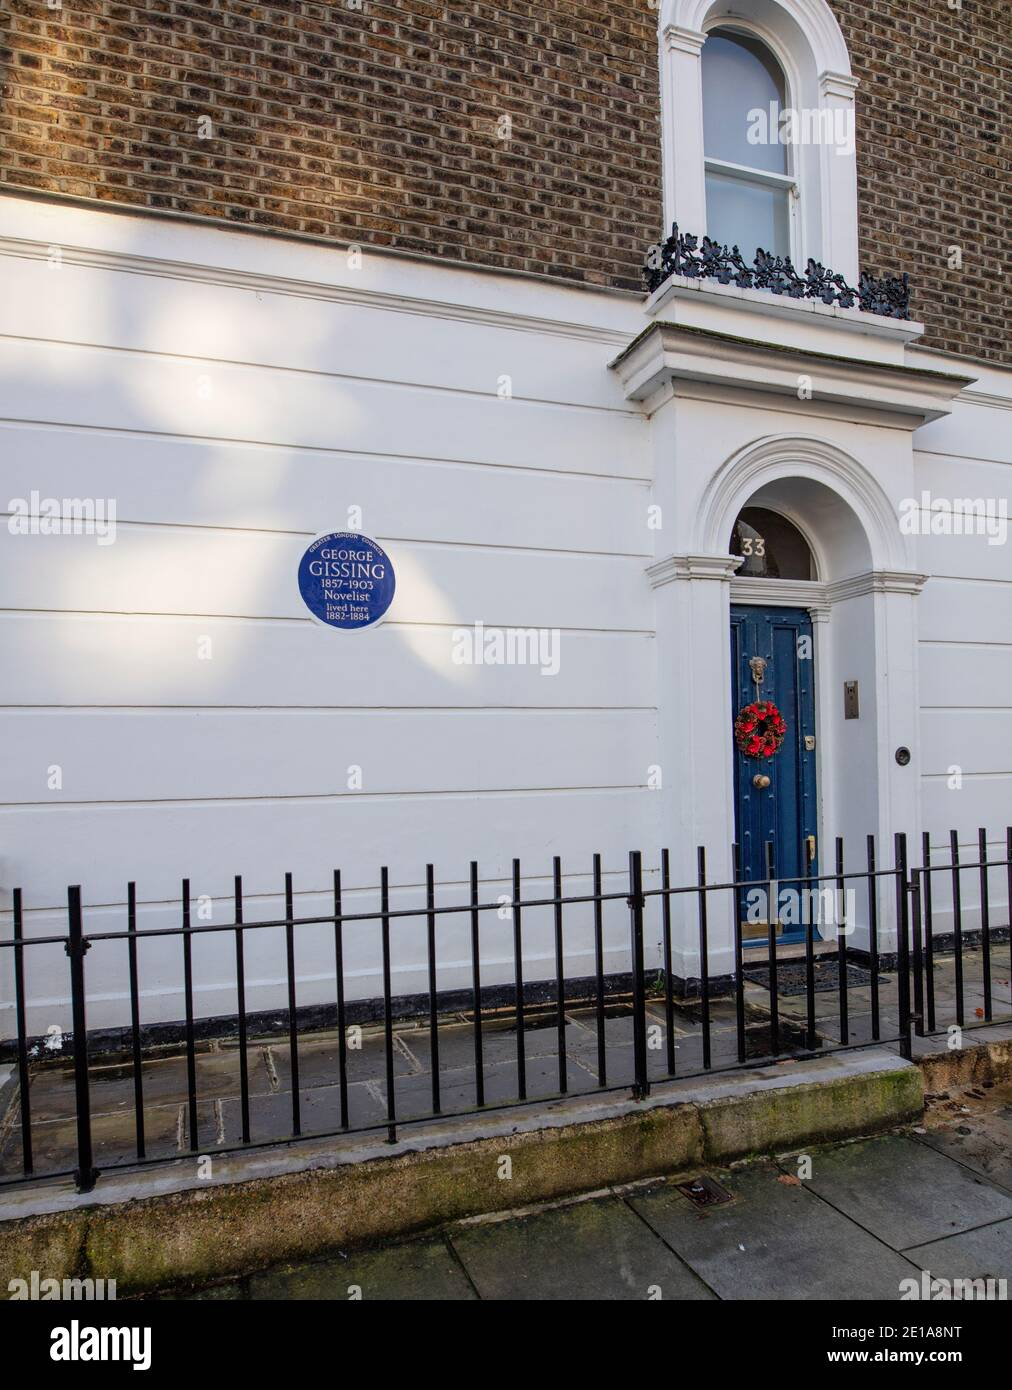 Greater London Council Blue Plaque for George Gissing, writer, in 33 Oakley Gardens, SW3 5NZ; he lived there 1882-1884 Stock Photo